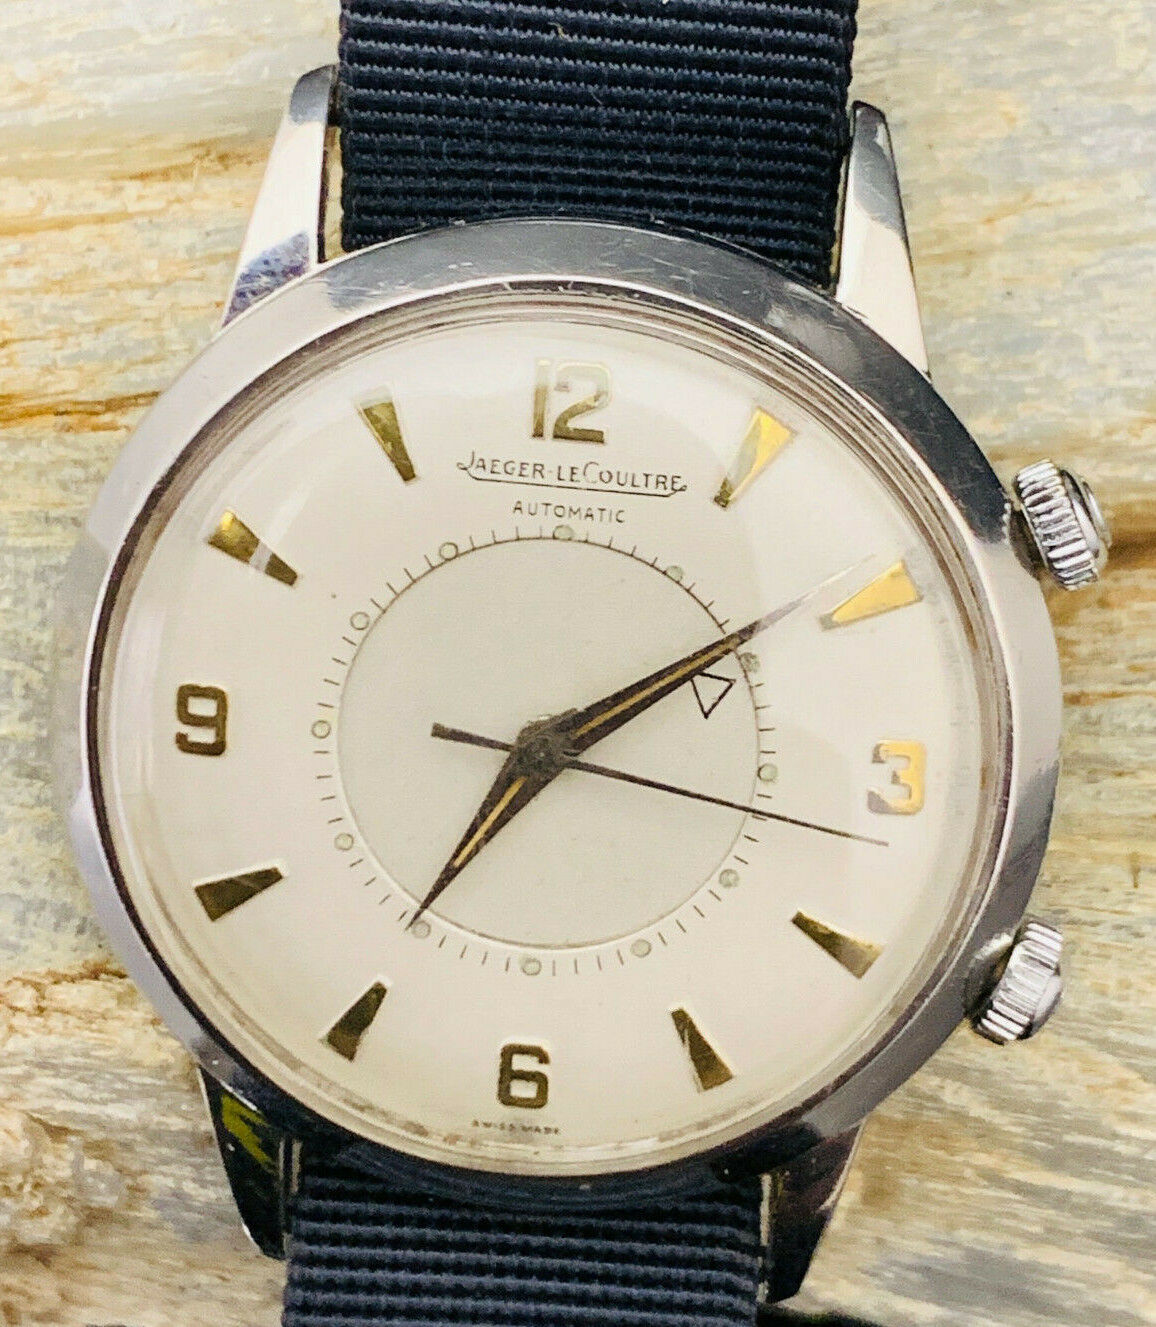 JUMBO VINTAGE MEMOVOX AUTOMATIC P 815 JAEGER LECOULTRE